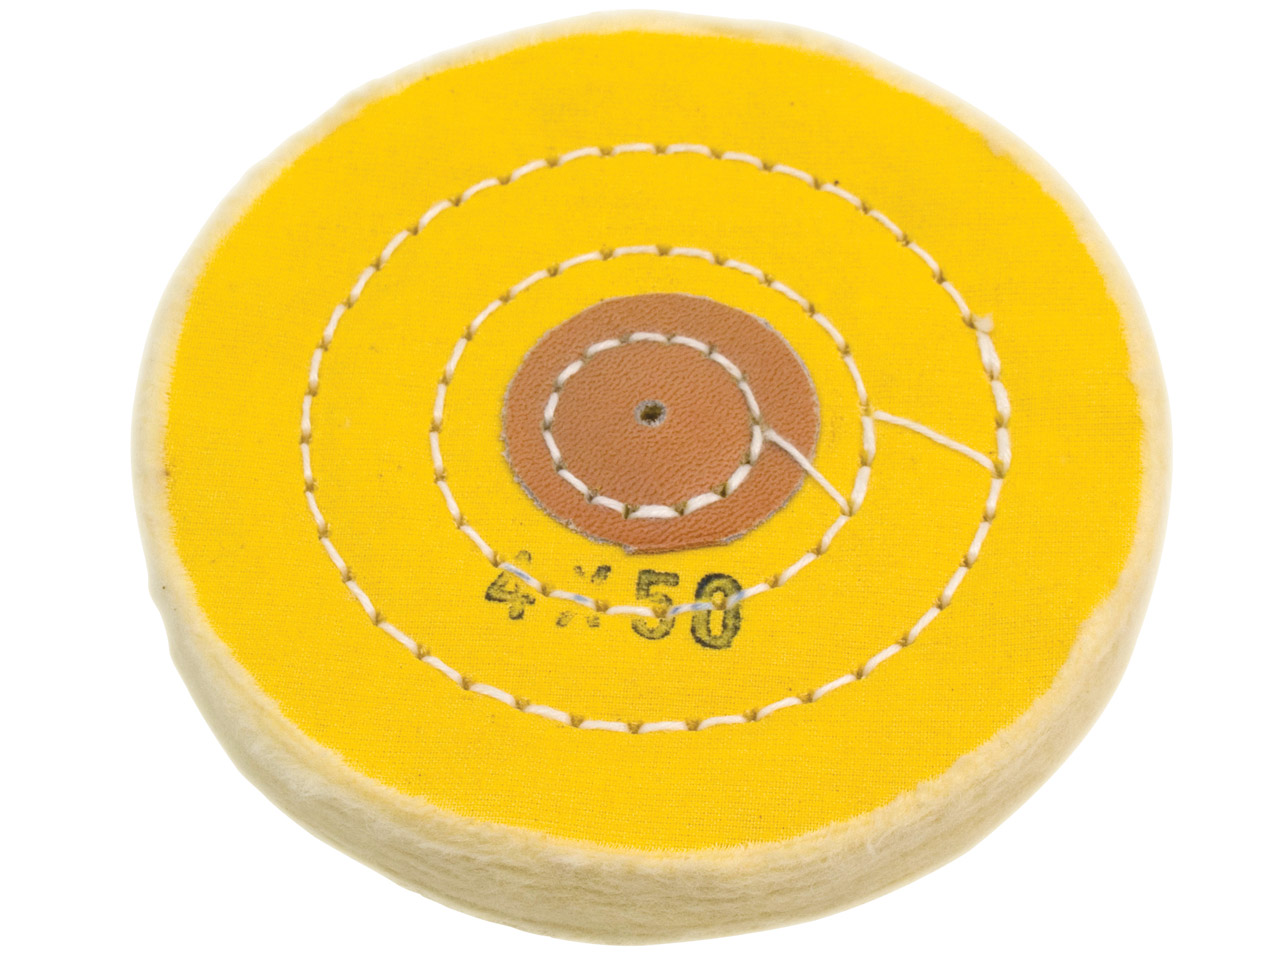 Stitched Yellow Mop 4